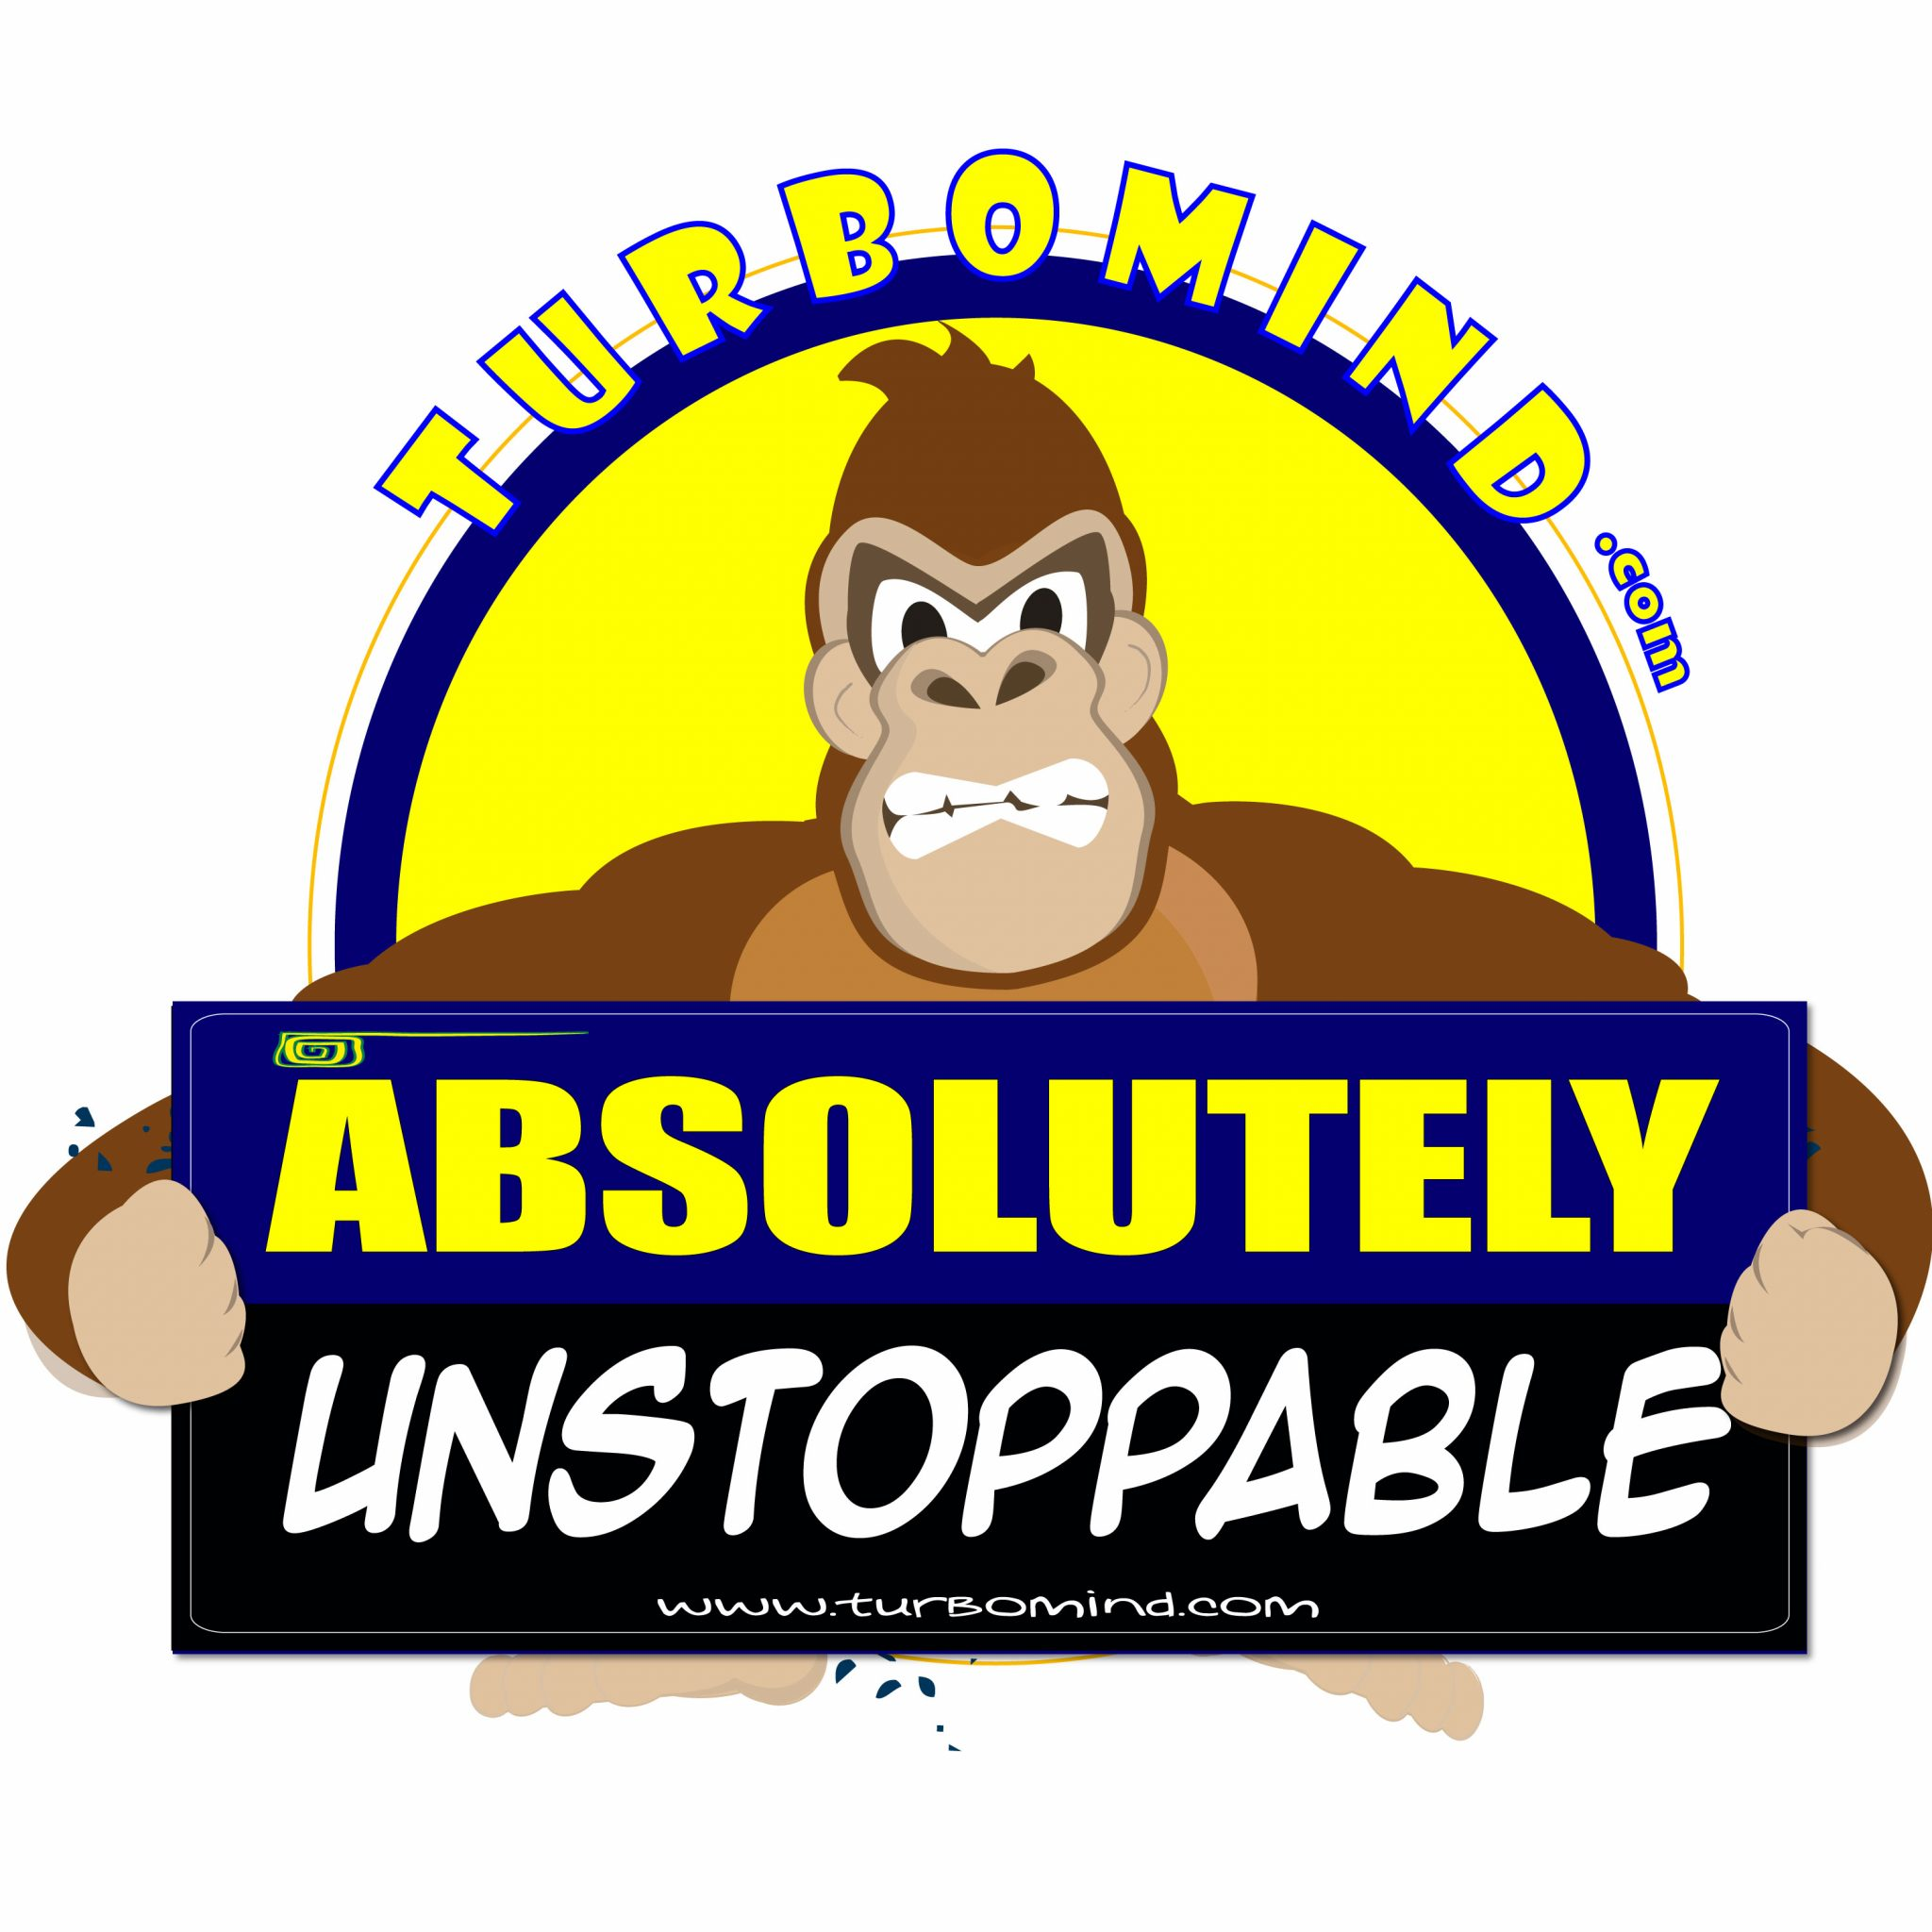 Absolutely UNSTOPPABLE, TURBOMIND DAILY INSPIRATION, by Miguel De La Fuente, https://www.turbomind.com/. World Leader in Inspiration and Creating Hope.